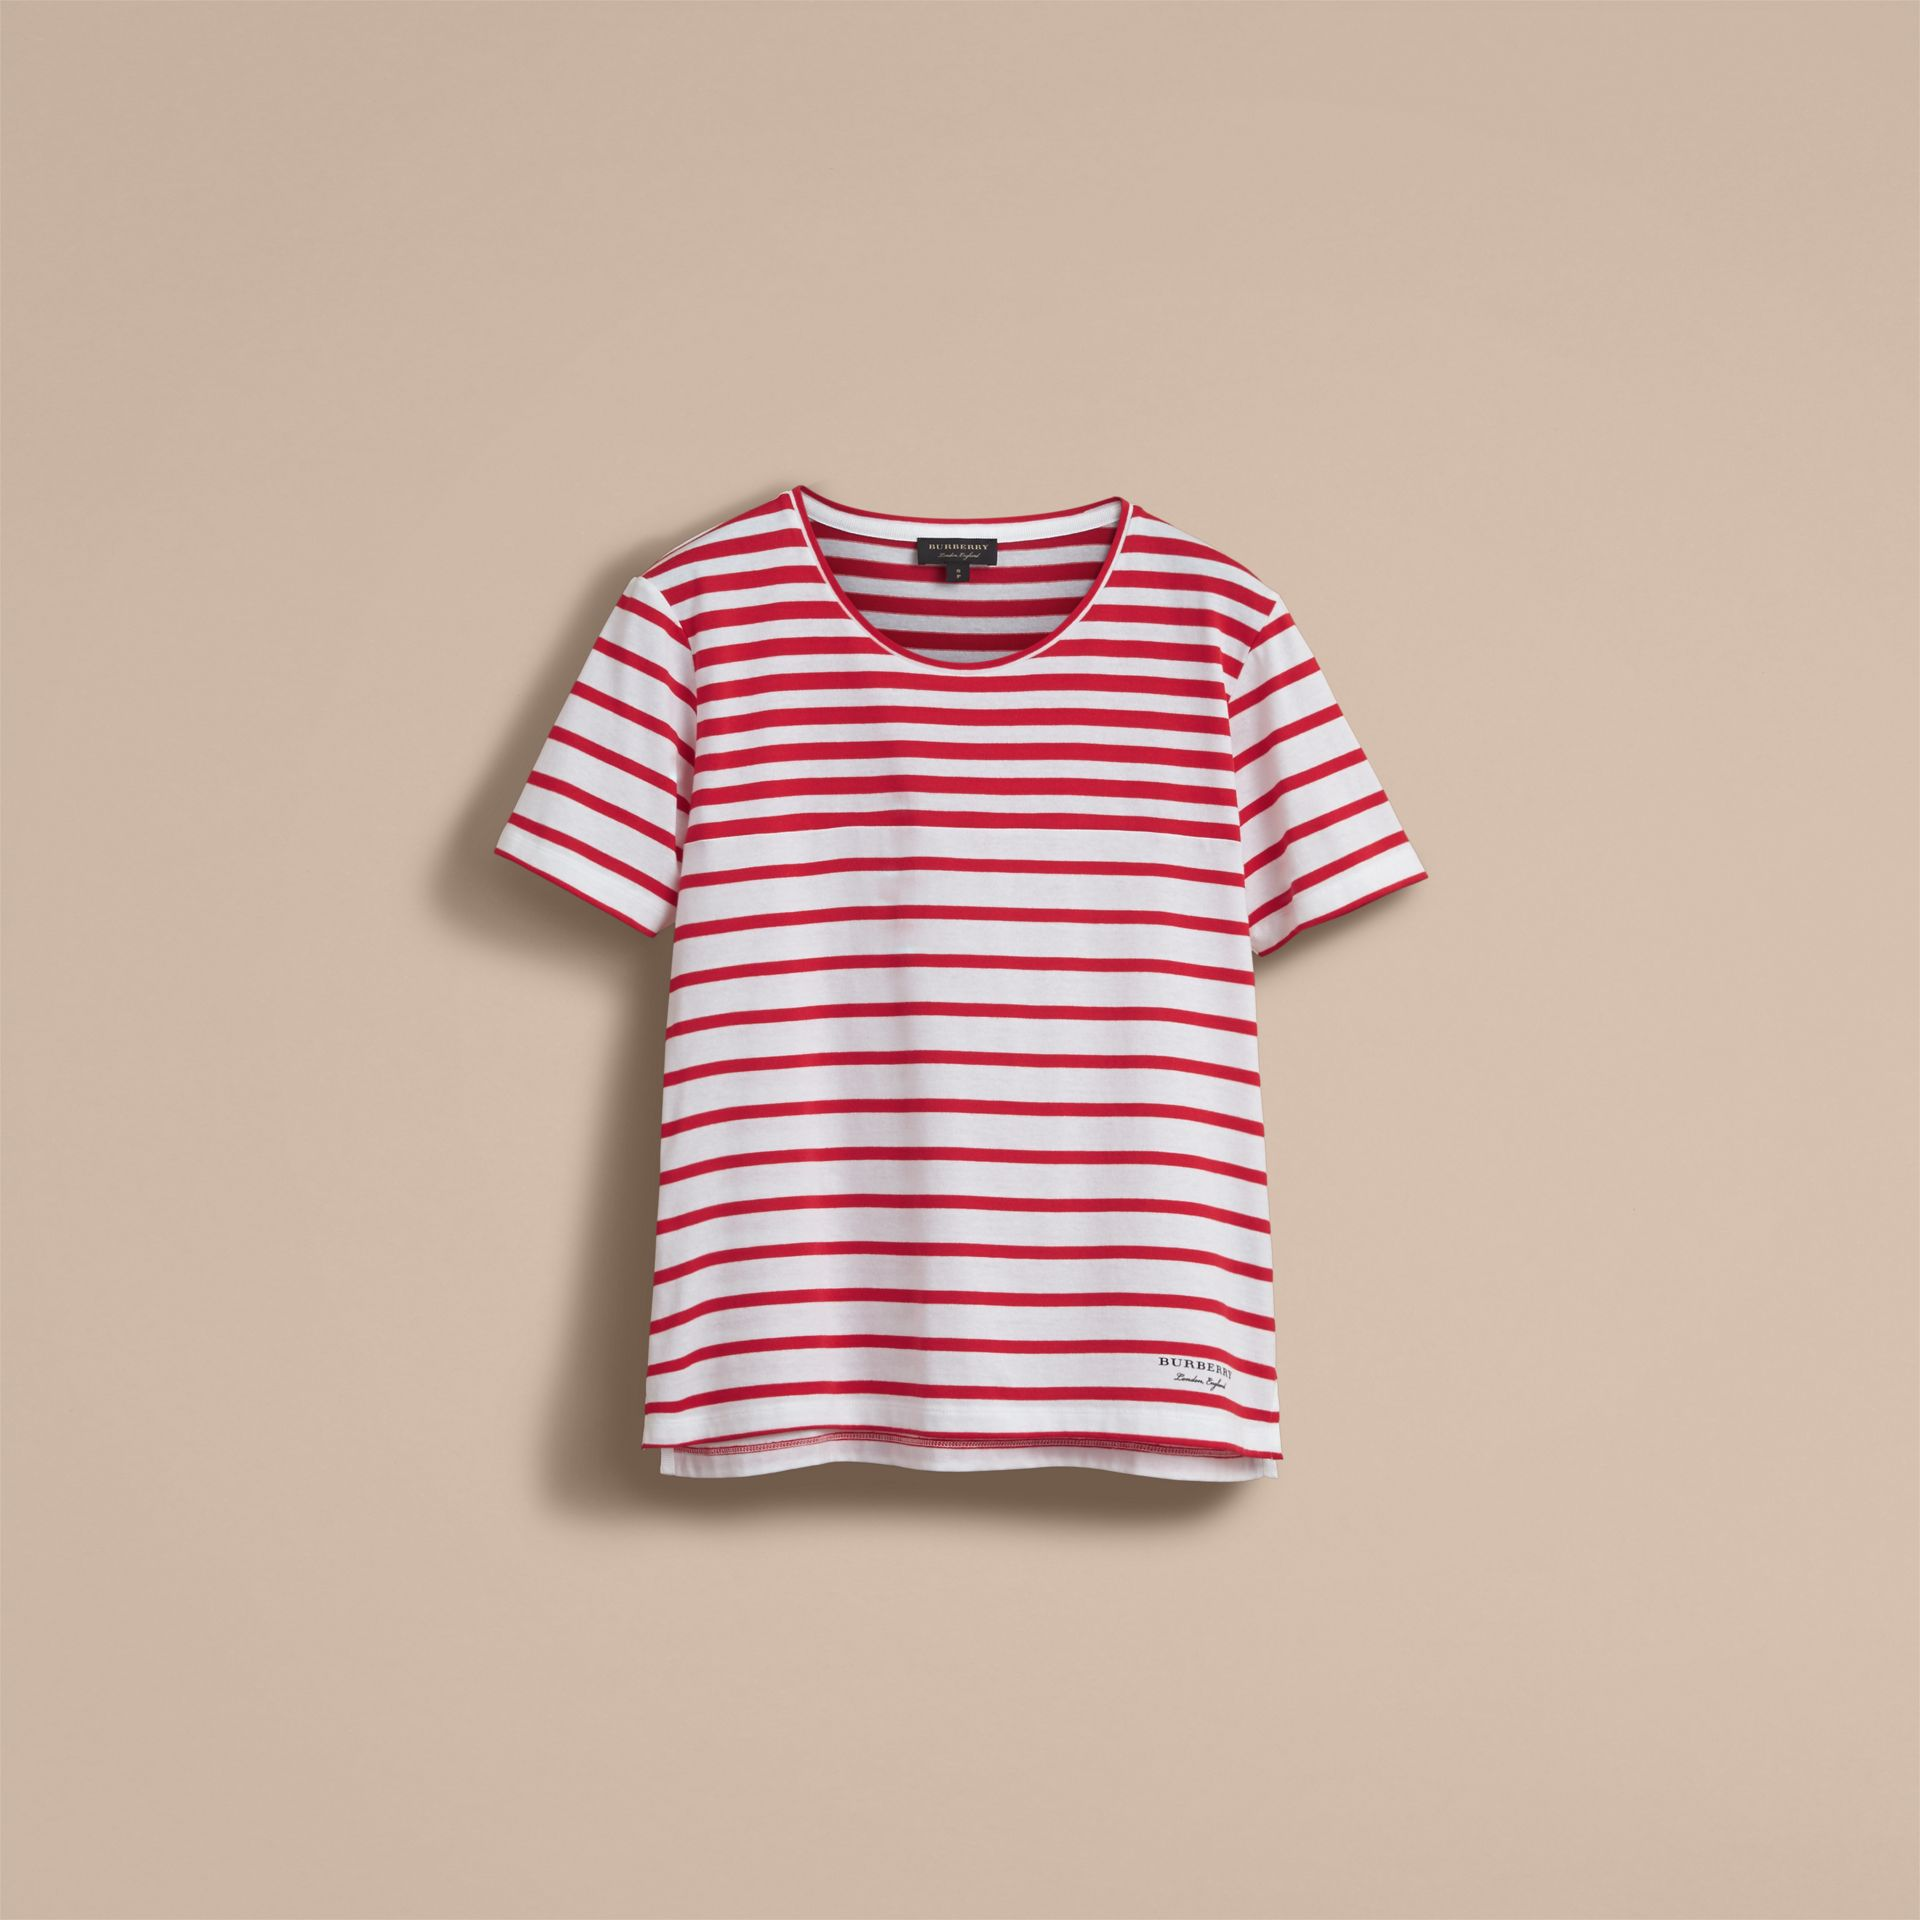 Breton Stripe Cotton T-shirt in Military Red/white - Women | Burberry United Kingdom - gallery image 4